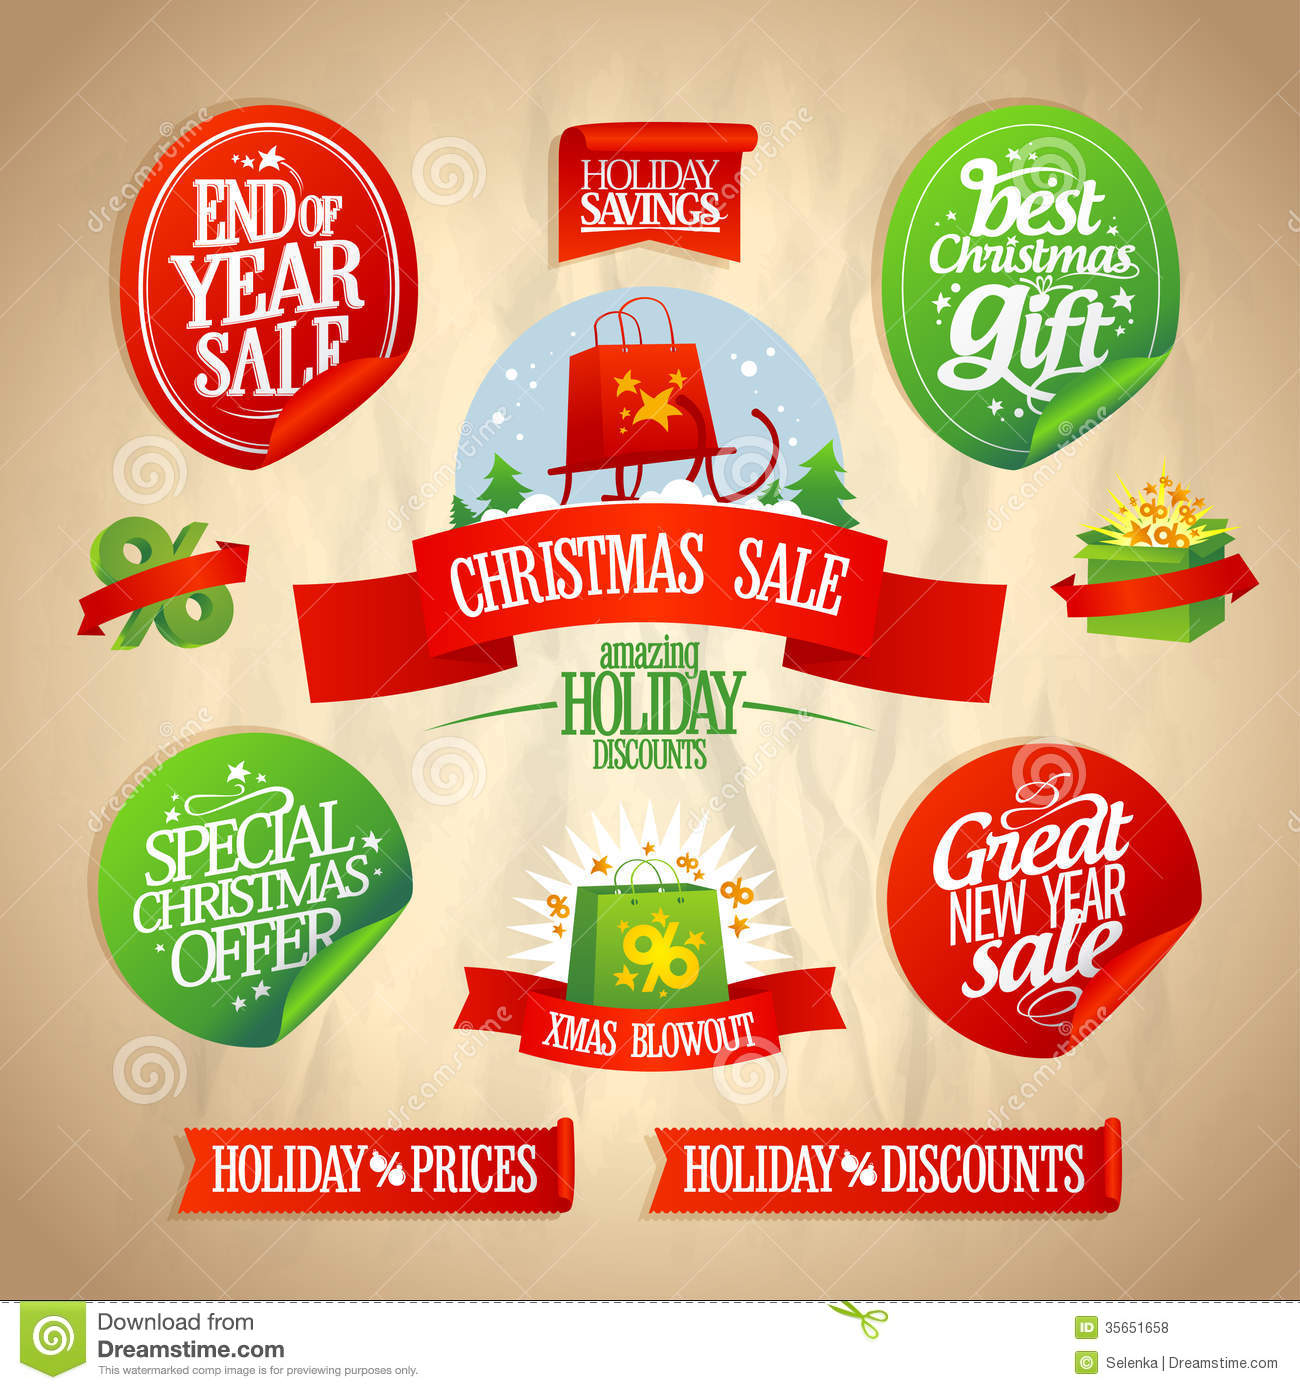 New Year And Christmas Sale Designs Collection. Stock ...